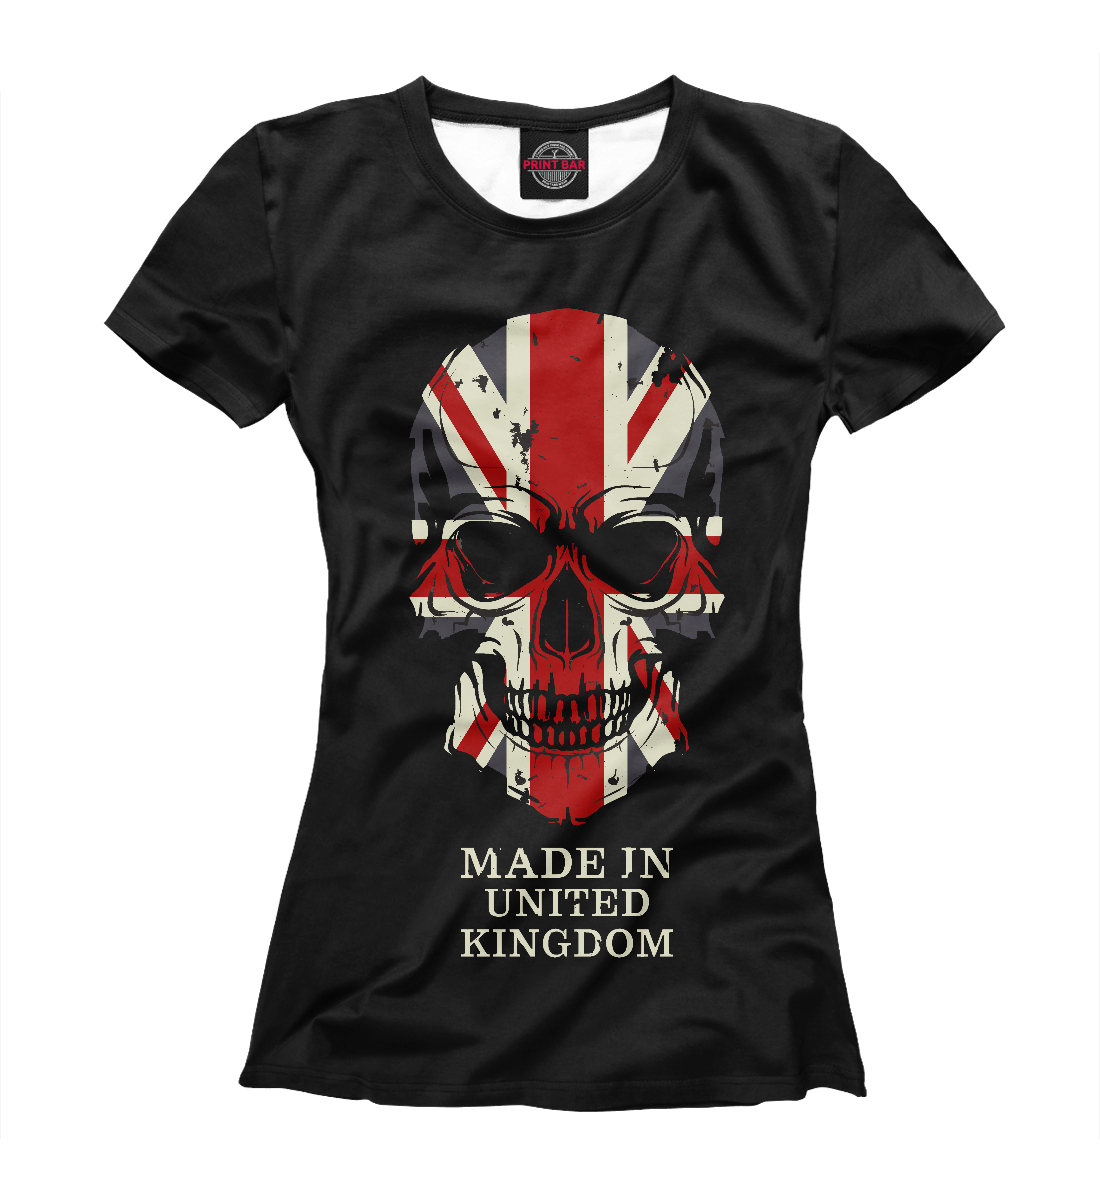 Купить Made in United Kingdom, Printbar, Футболки, SKU-509485-fut-1